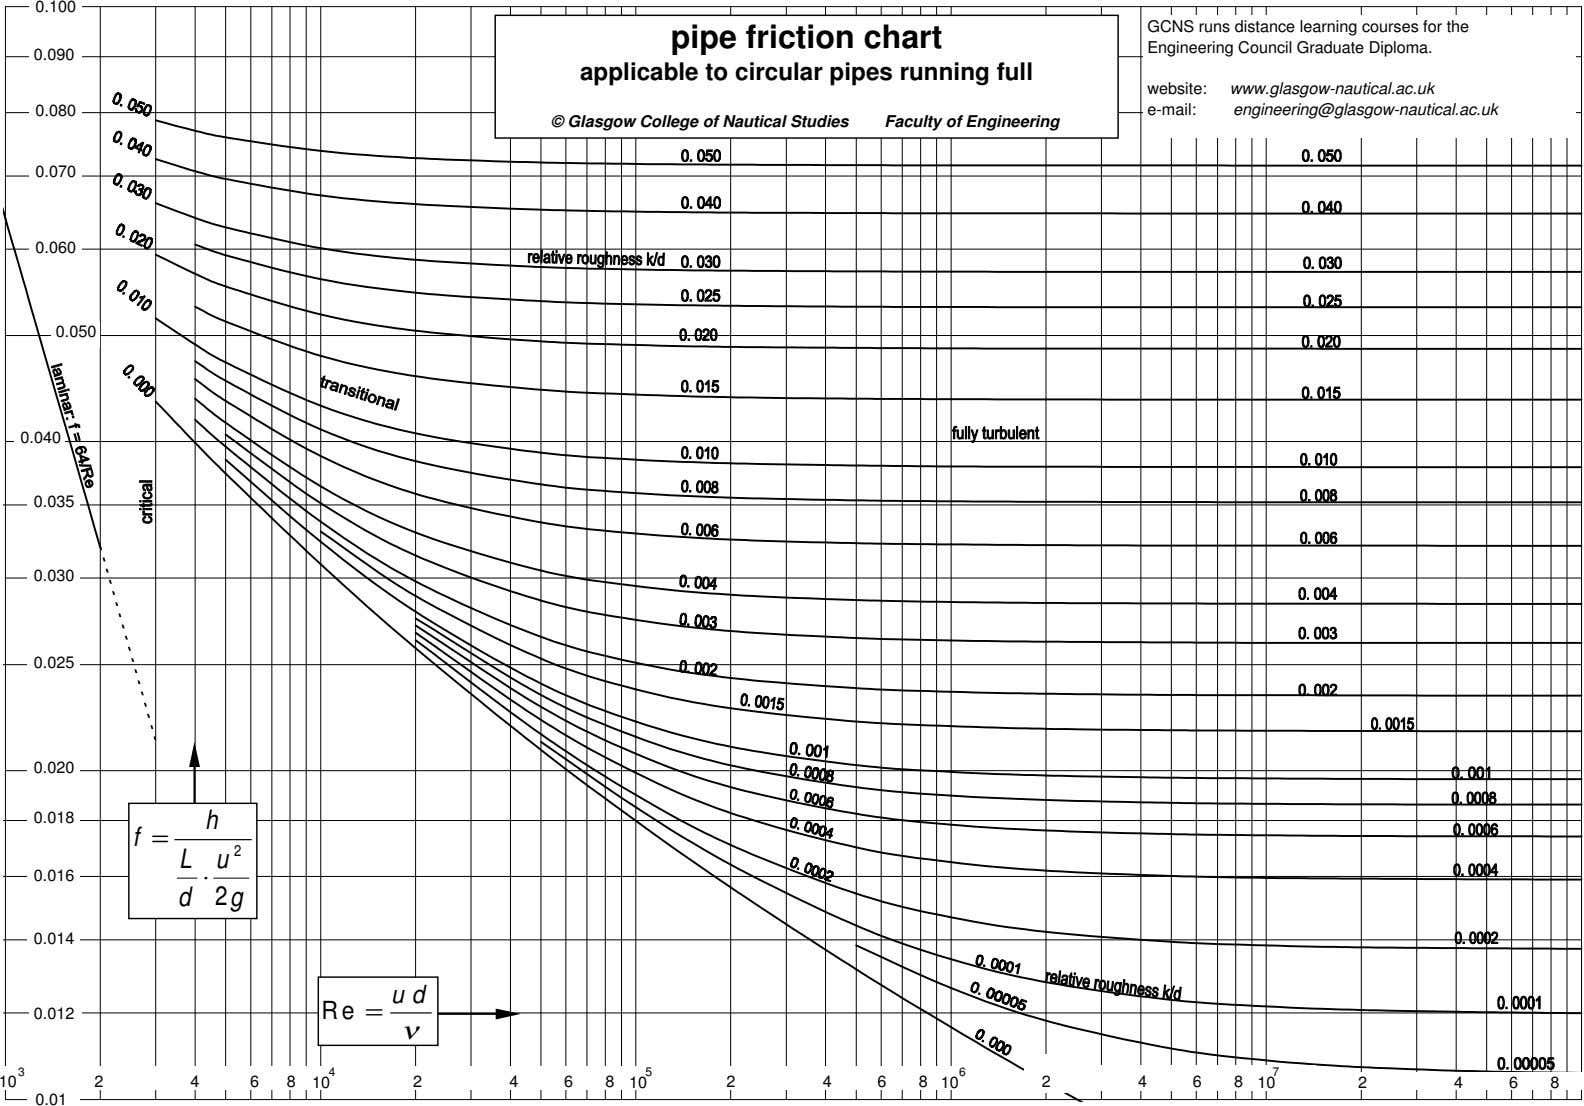 0.100 GCNS runs distance learning courses for the pipe friction chart Engineering Council Graduate Diploma.